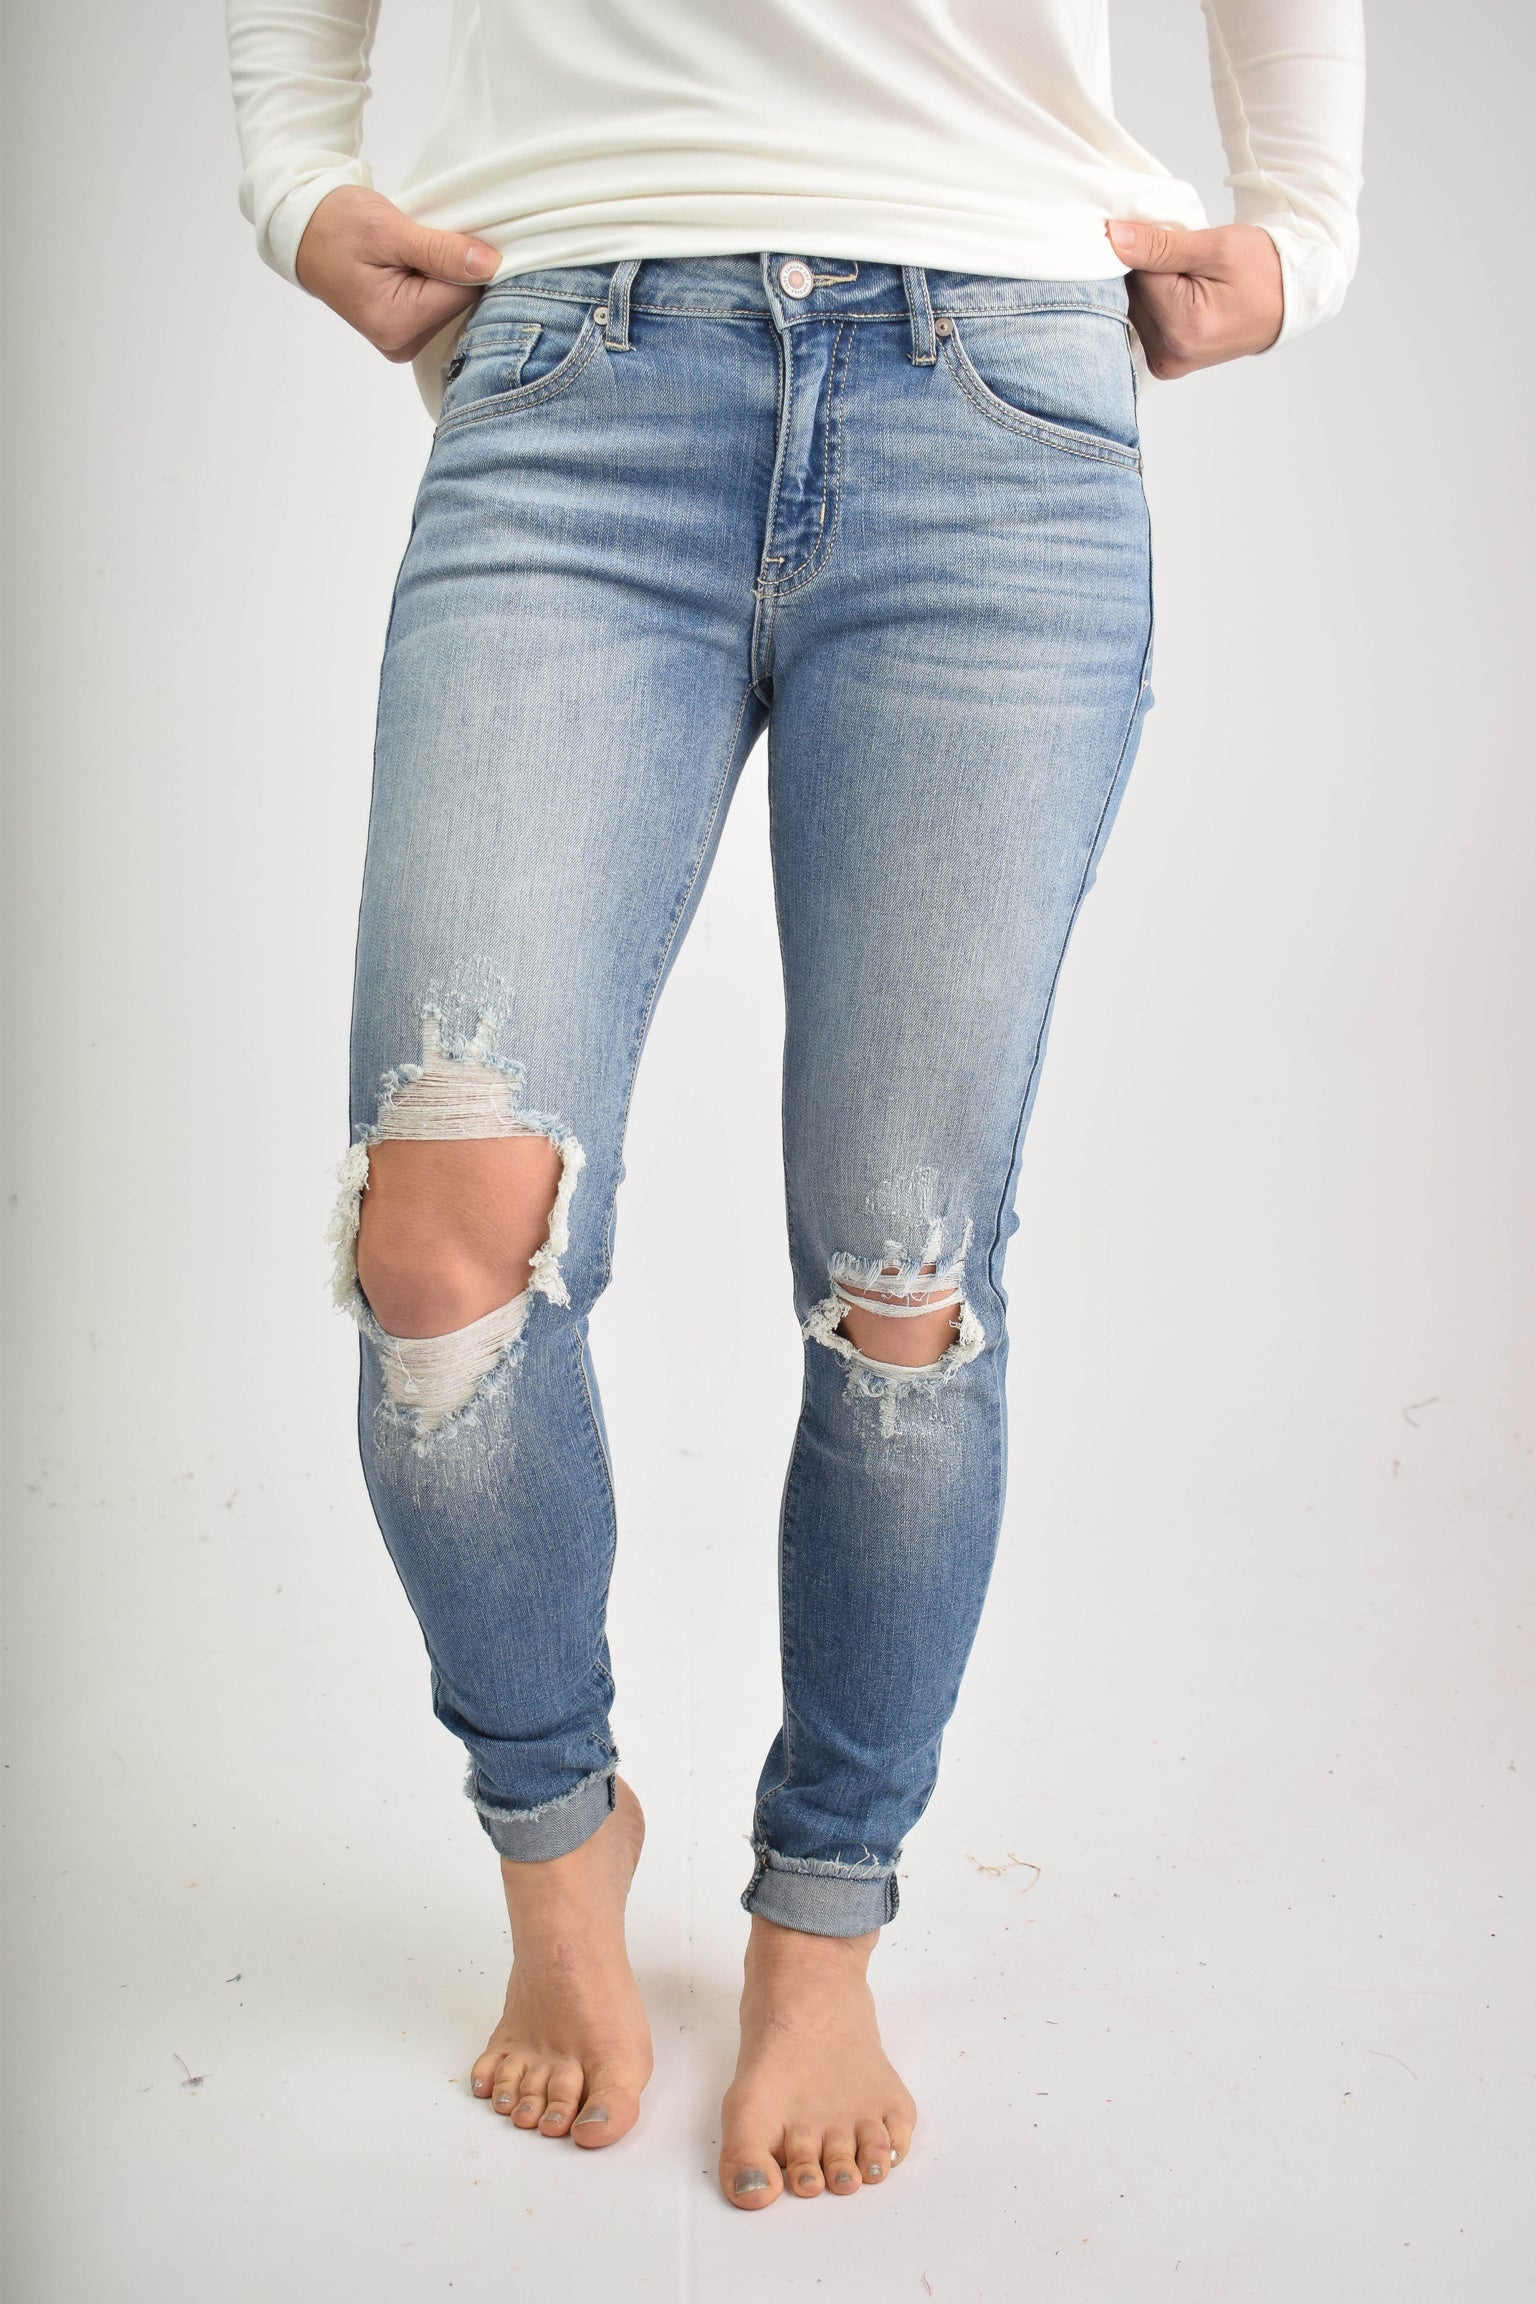 Behind the Scenes Open Knee Distressed Skinny Jeans